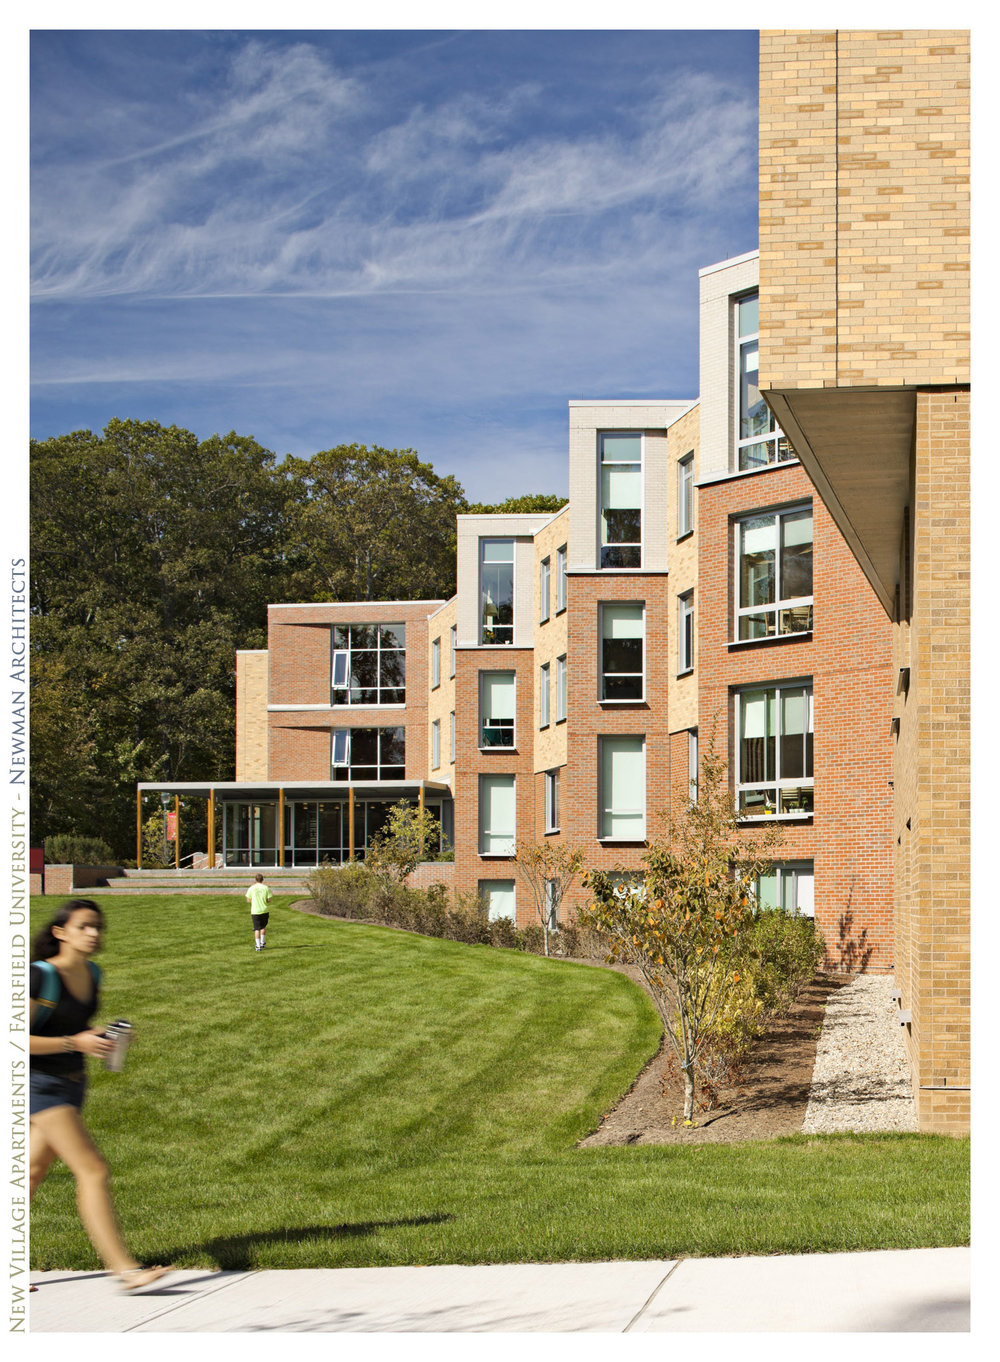 037_Robert-Benson-Photography-New-Village-Apartments-Fairfield-University-10.JPG